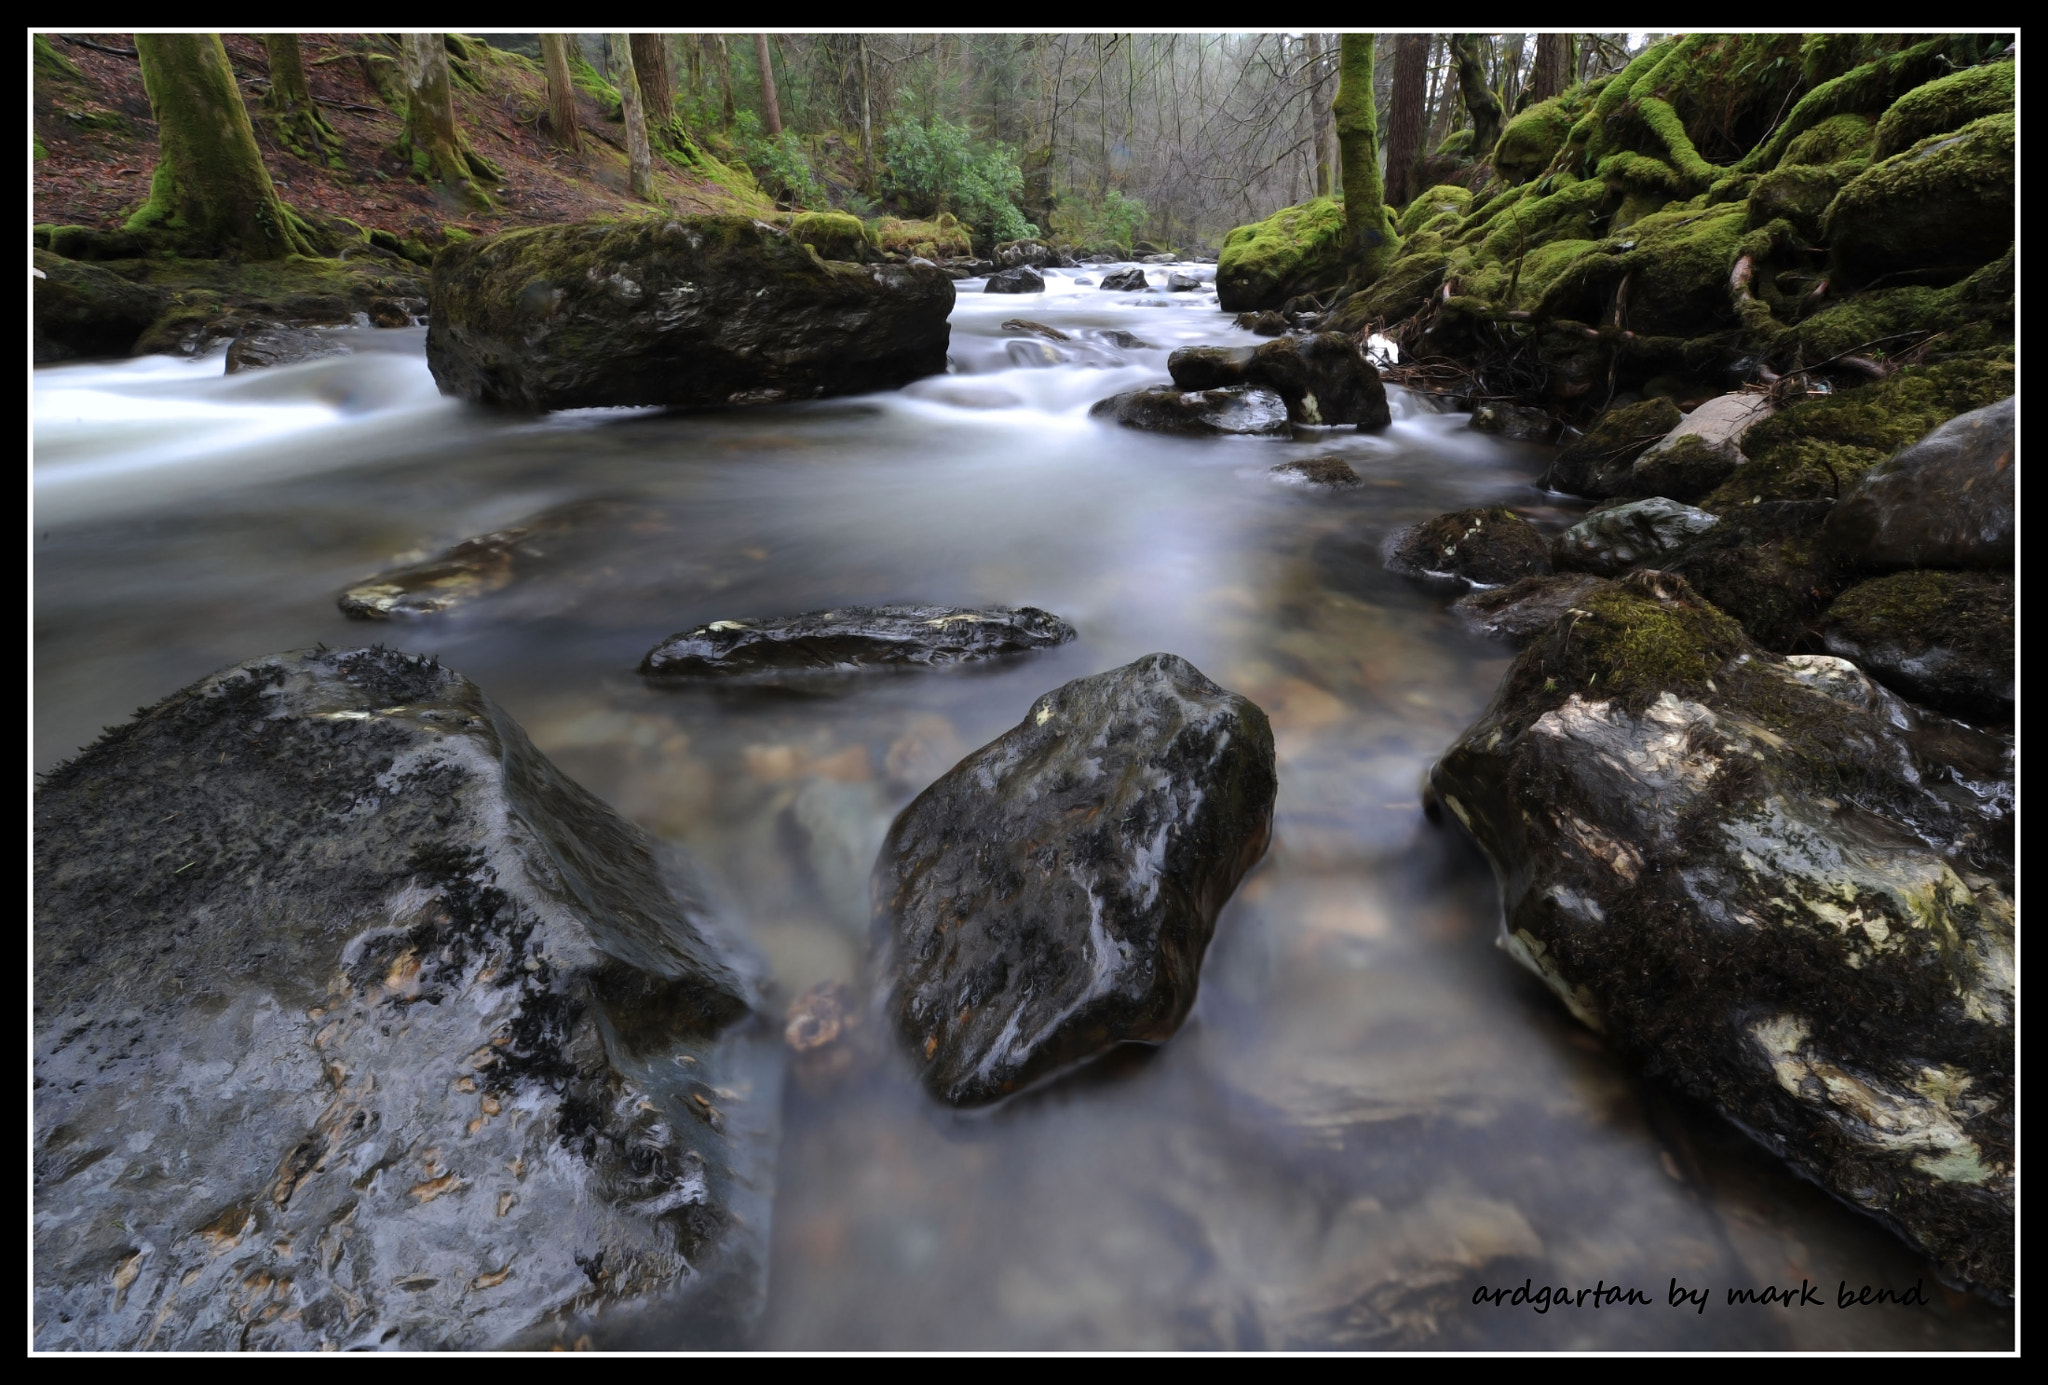 Photograph ardgarton burn1 by Mark Bend on 500px